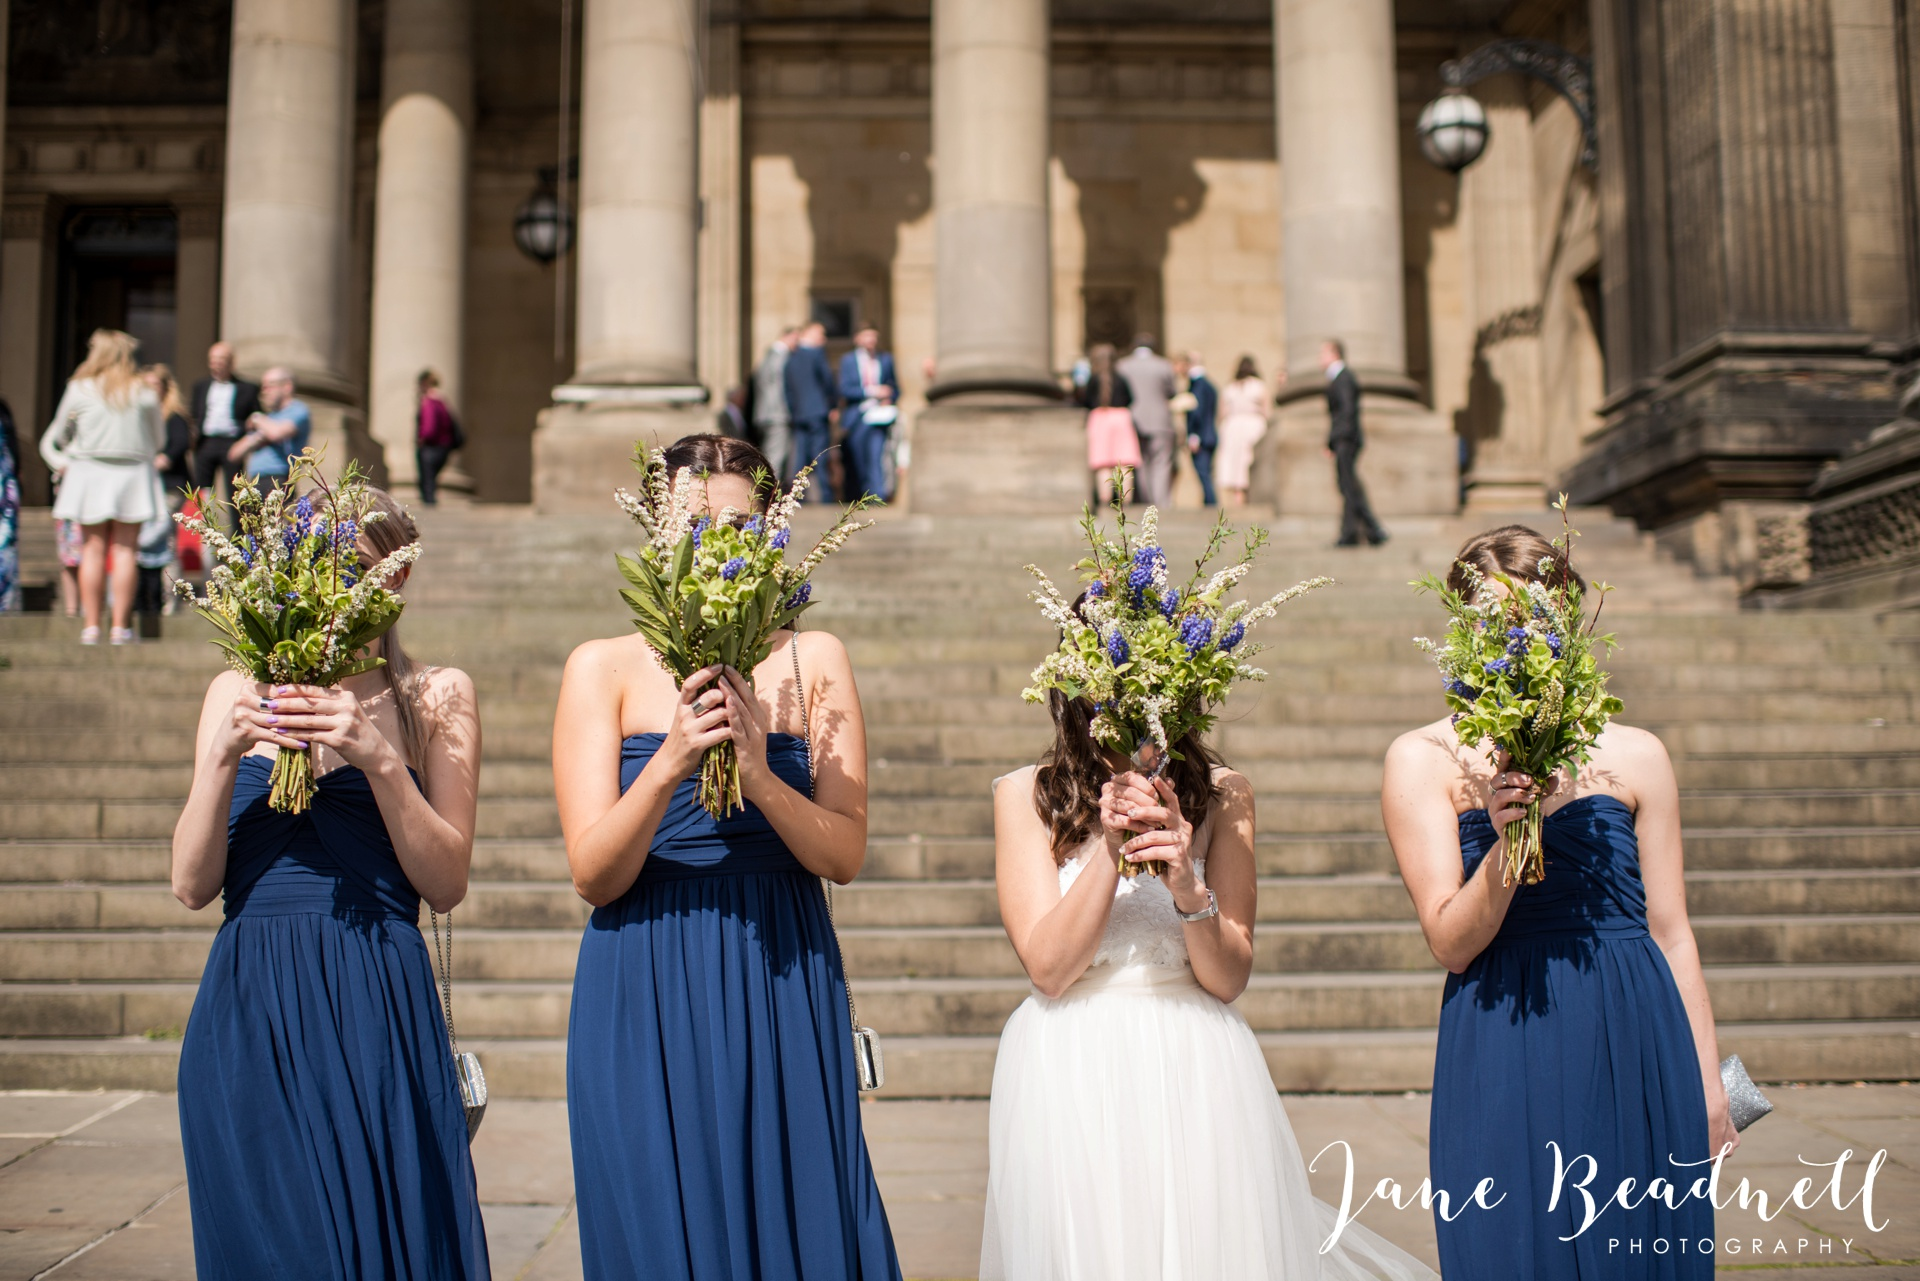 Left Bank Centre Leeds wedding photography by Jane Beadnell photography Yorkshire_0019